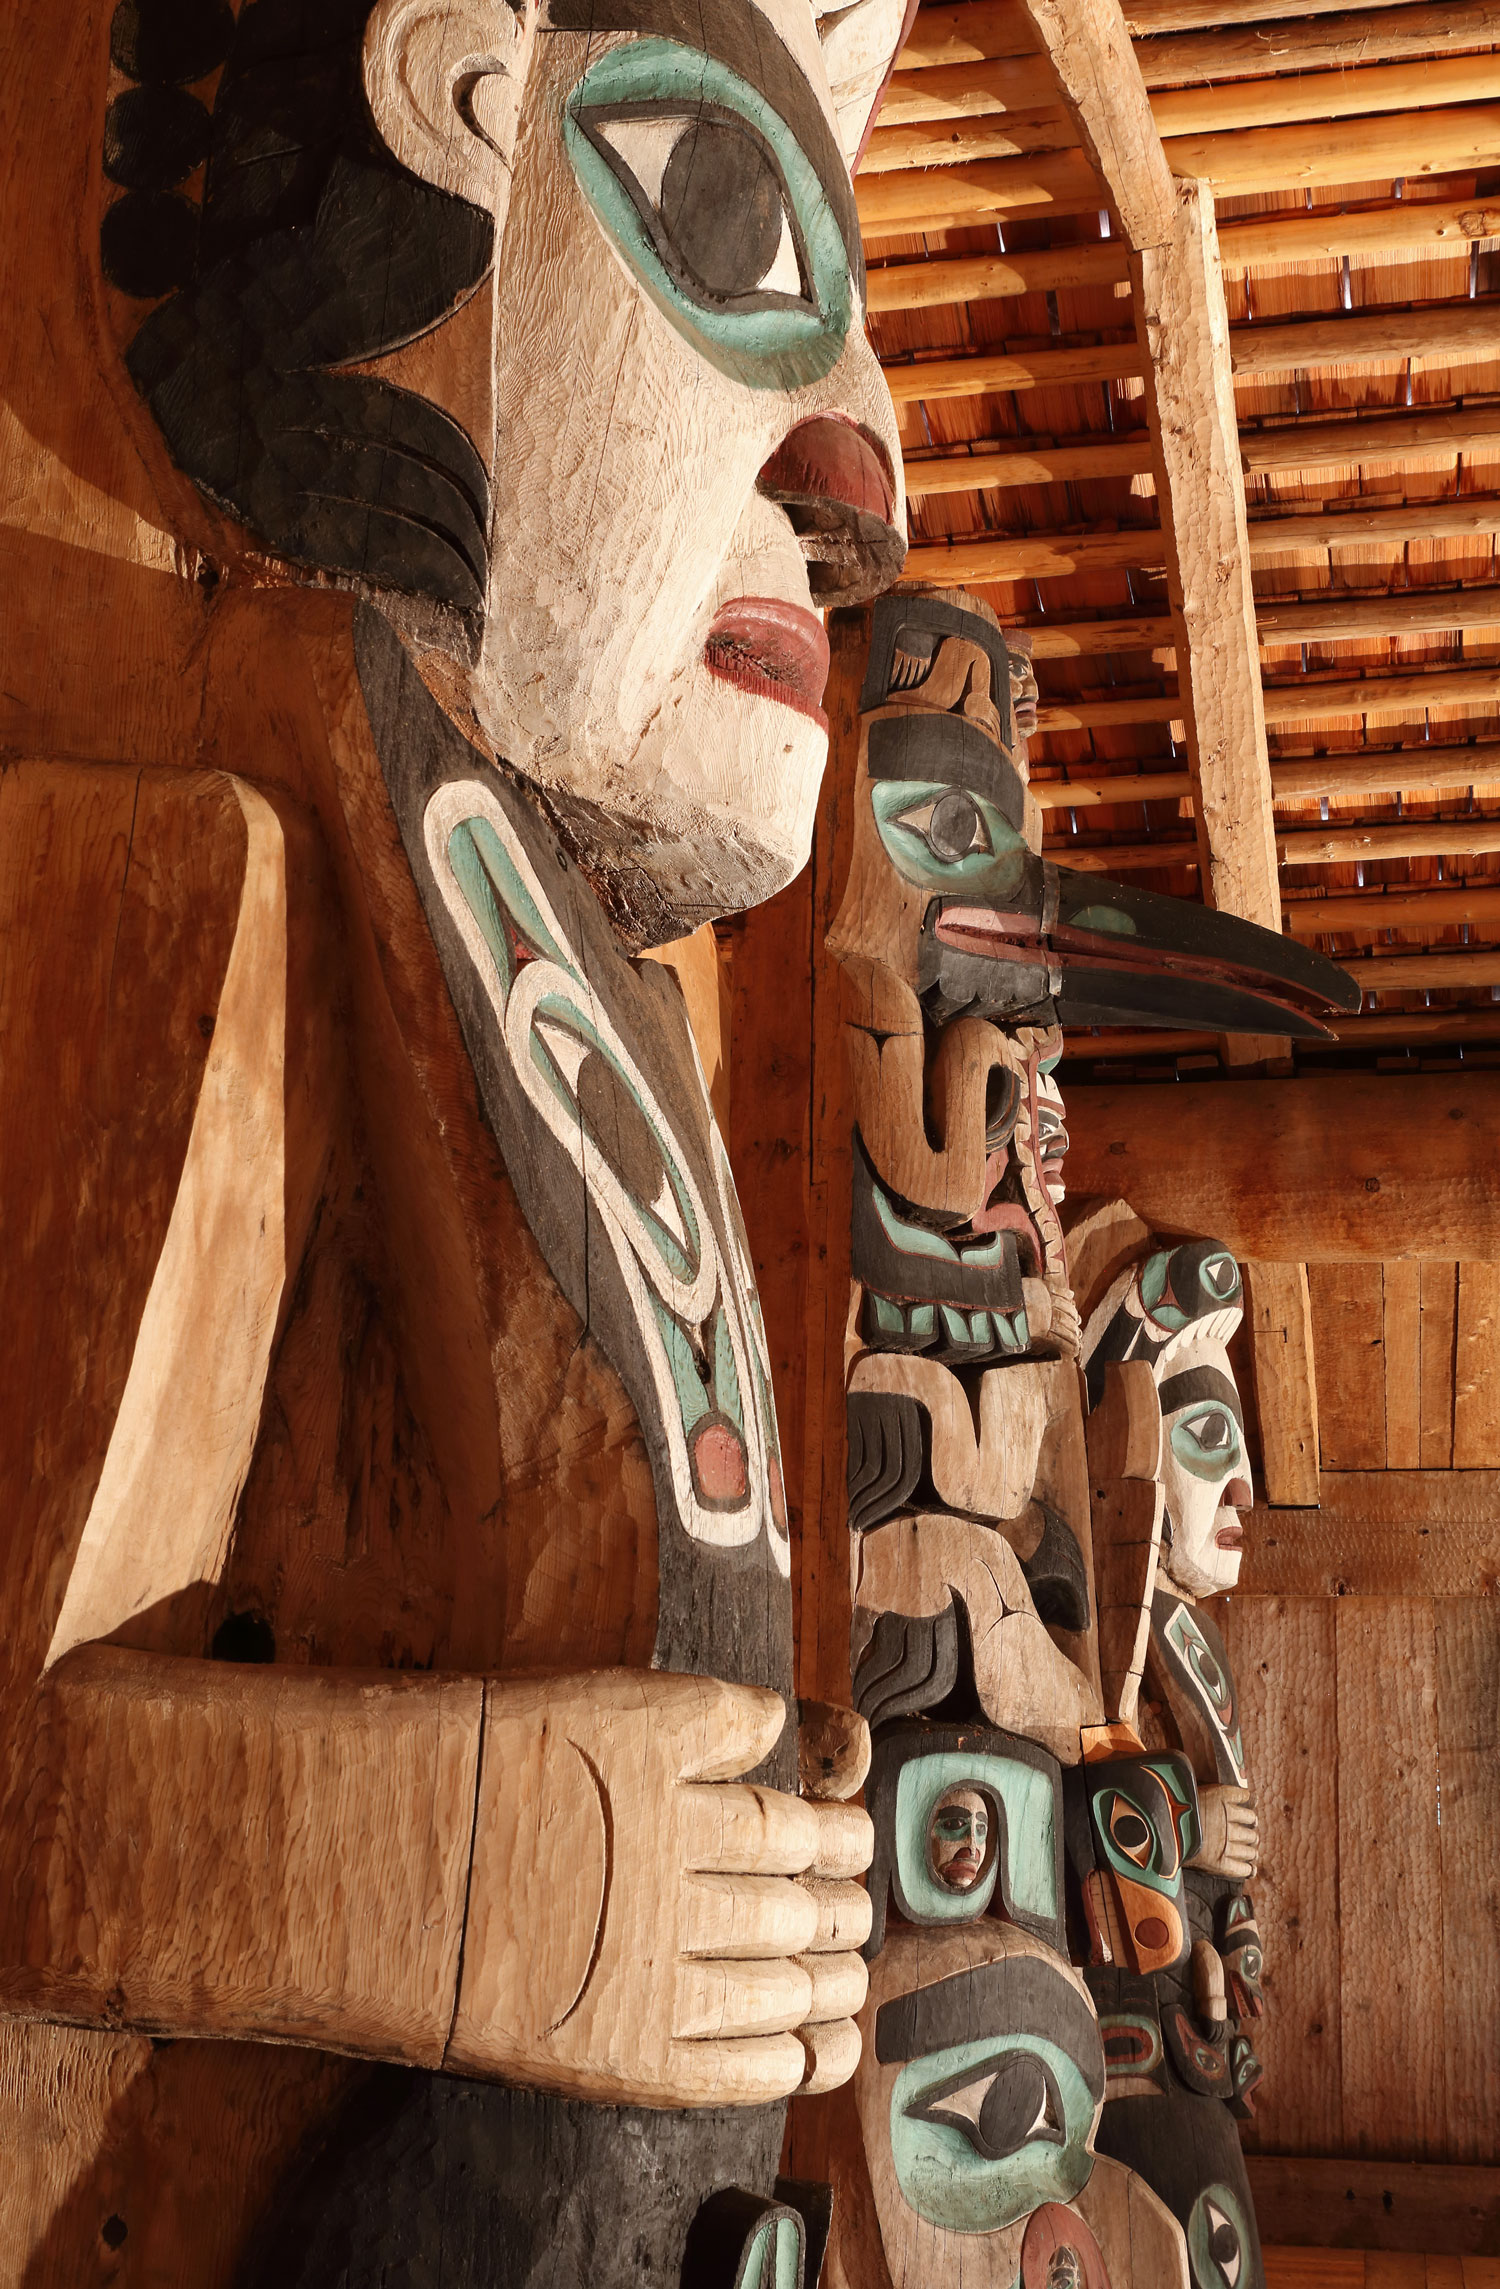 These totem poles are over a century old.